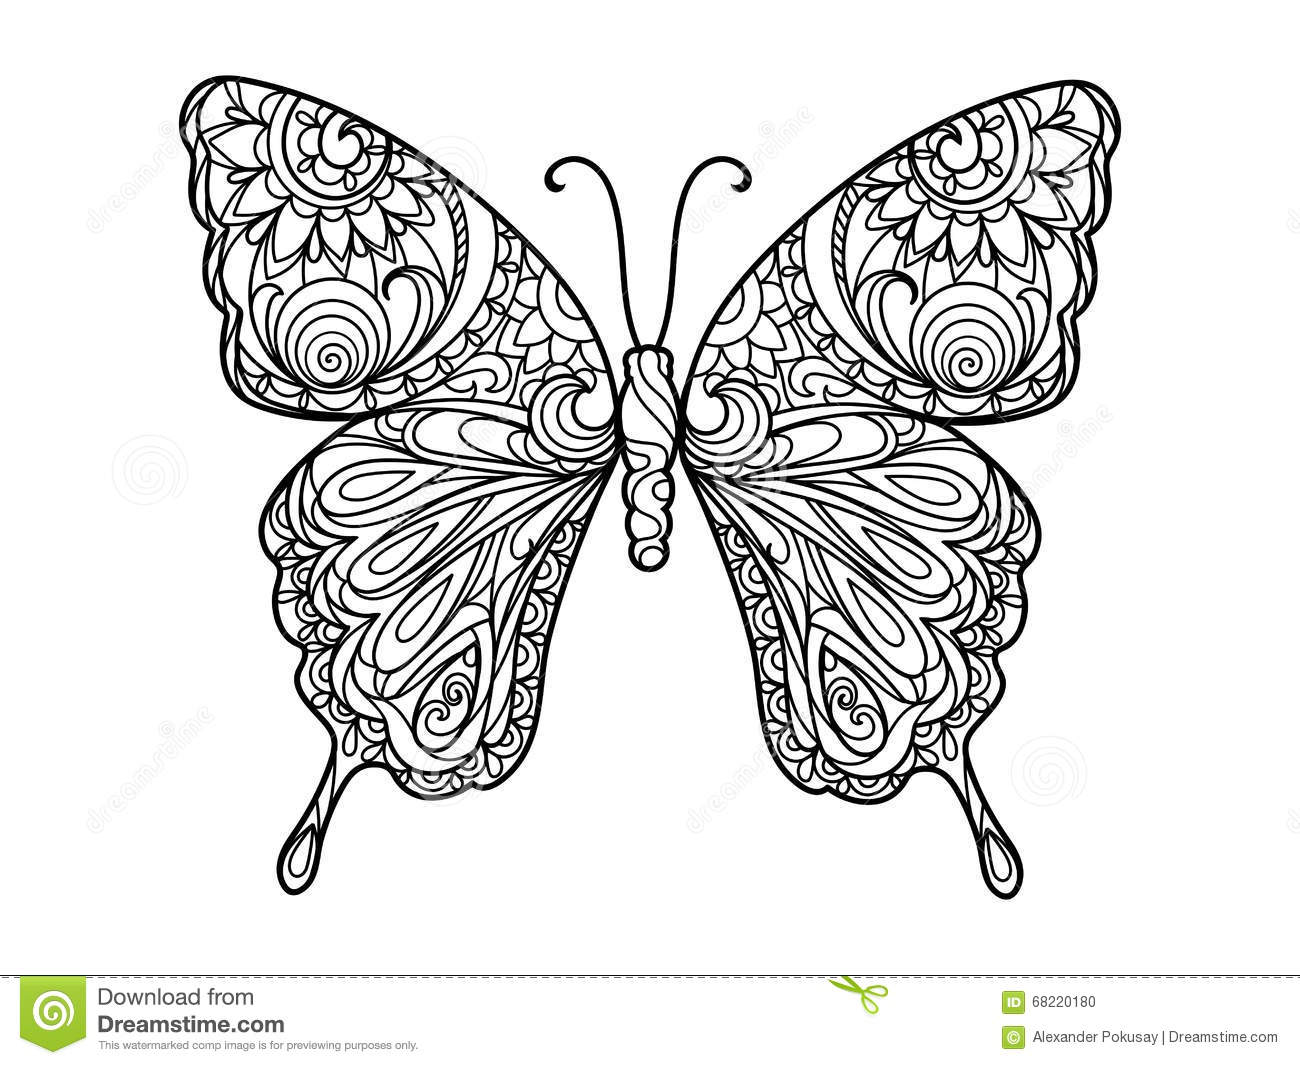 Zen coloring books for adults app - Butterfly Coloring Book For Adults Vector